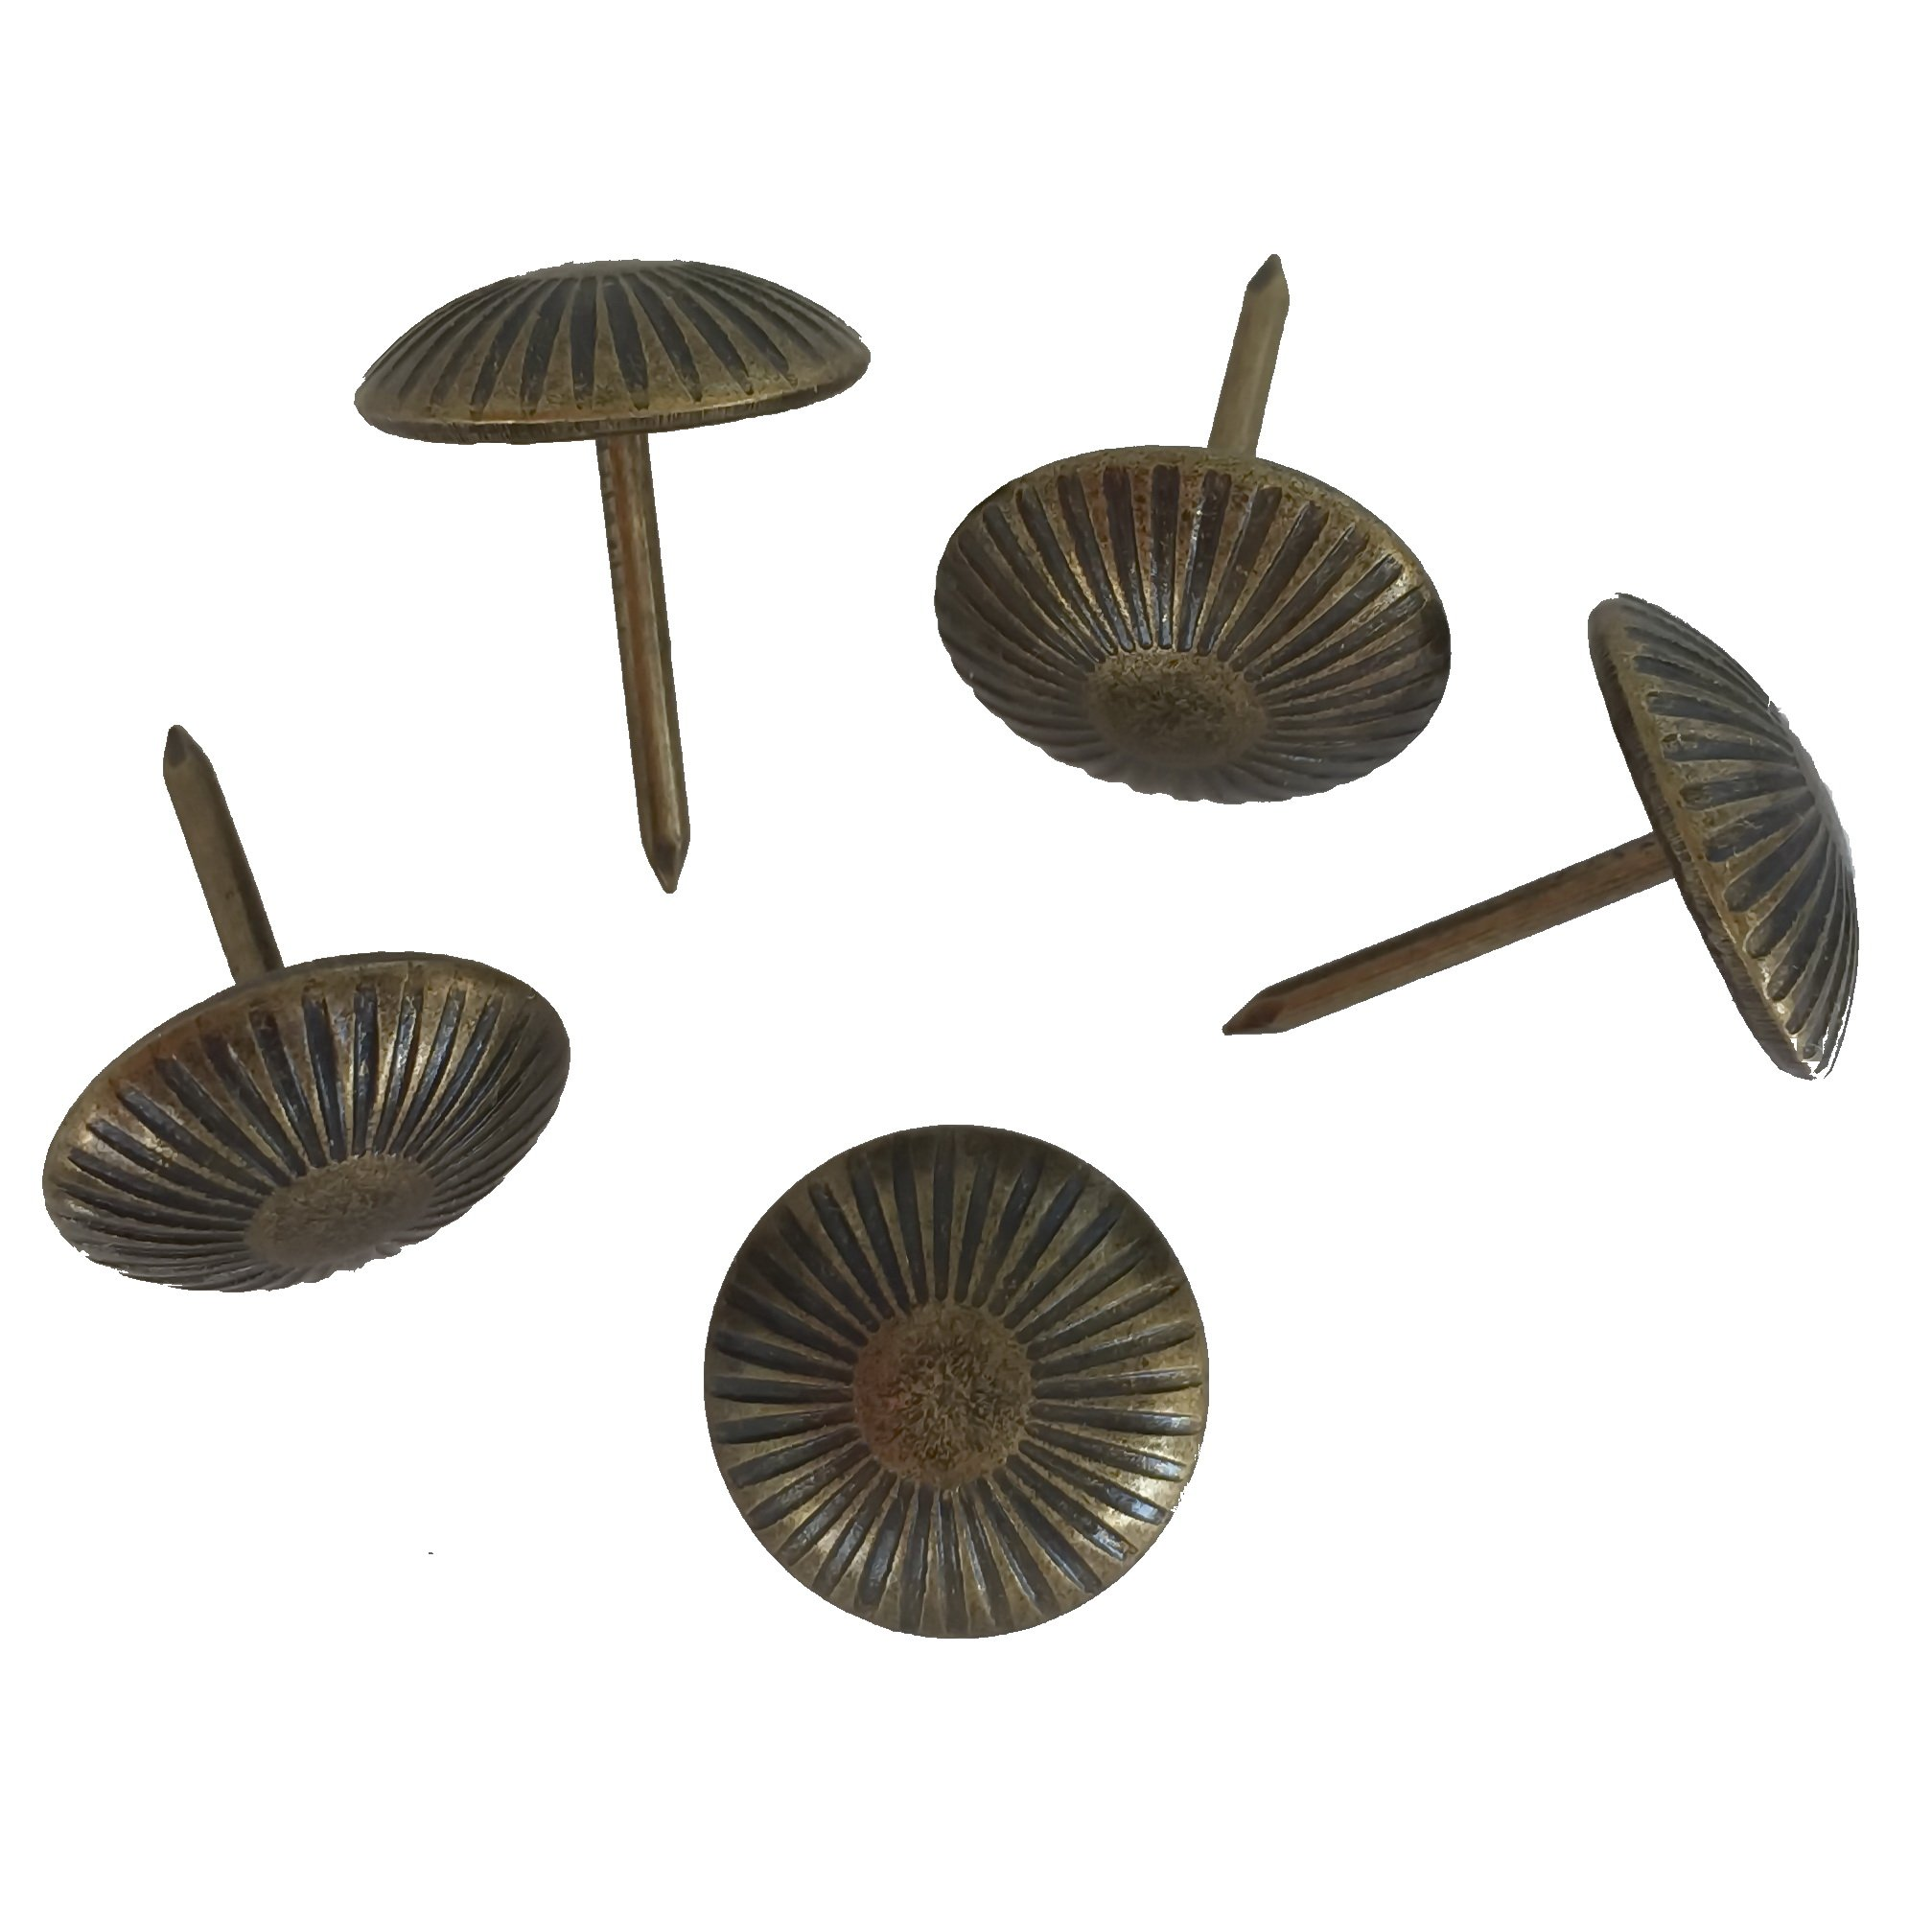 decotacks Sunny Upholstery Nails/Tacks 5/8'' - 100 Pcs [Antique Brass, French Natural] DX120AB by decotacks